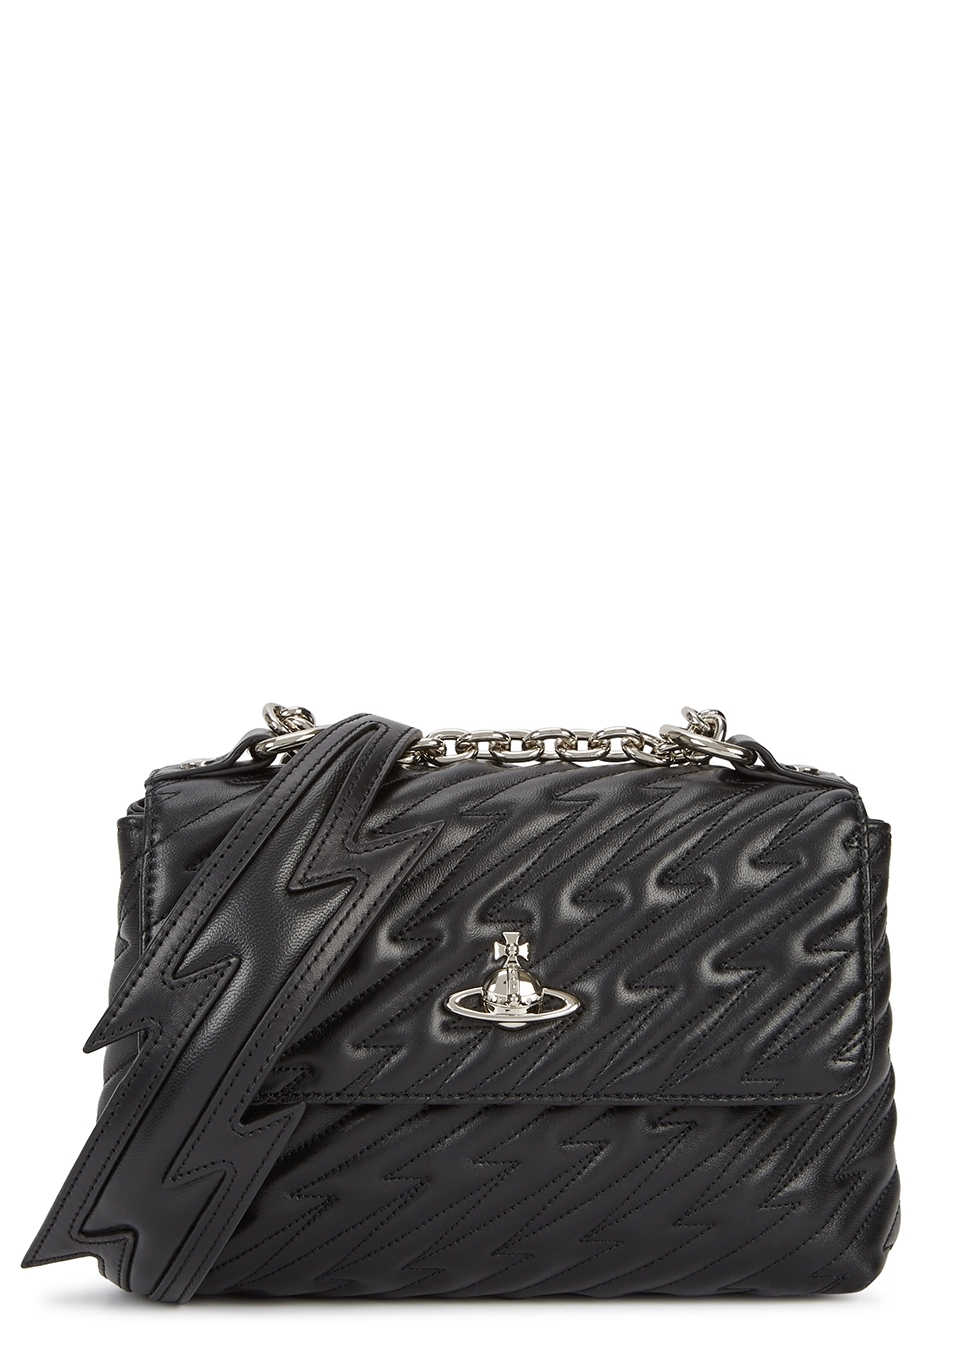 2021d084ce25 Women s Designer Cross-Body Bags - Harvey Nichols